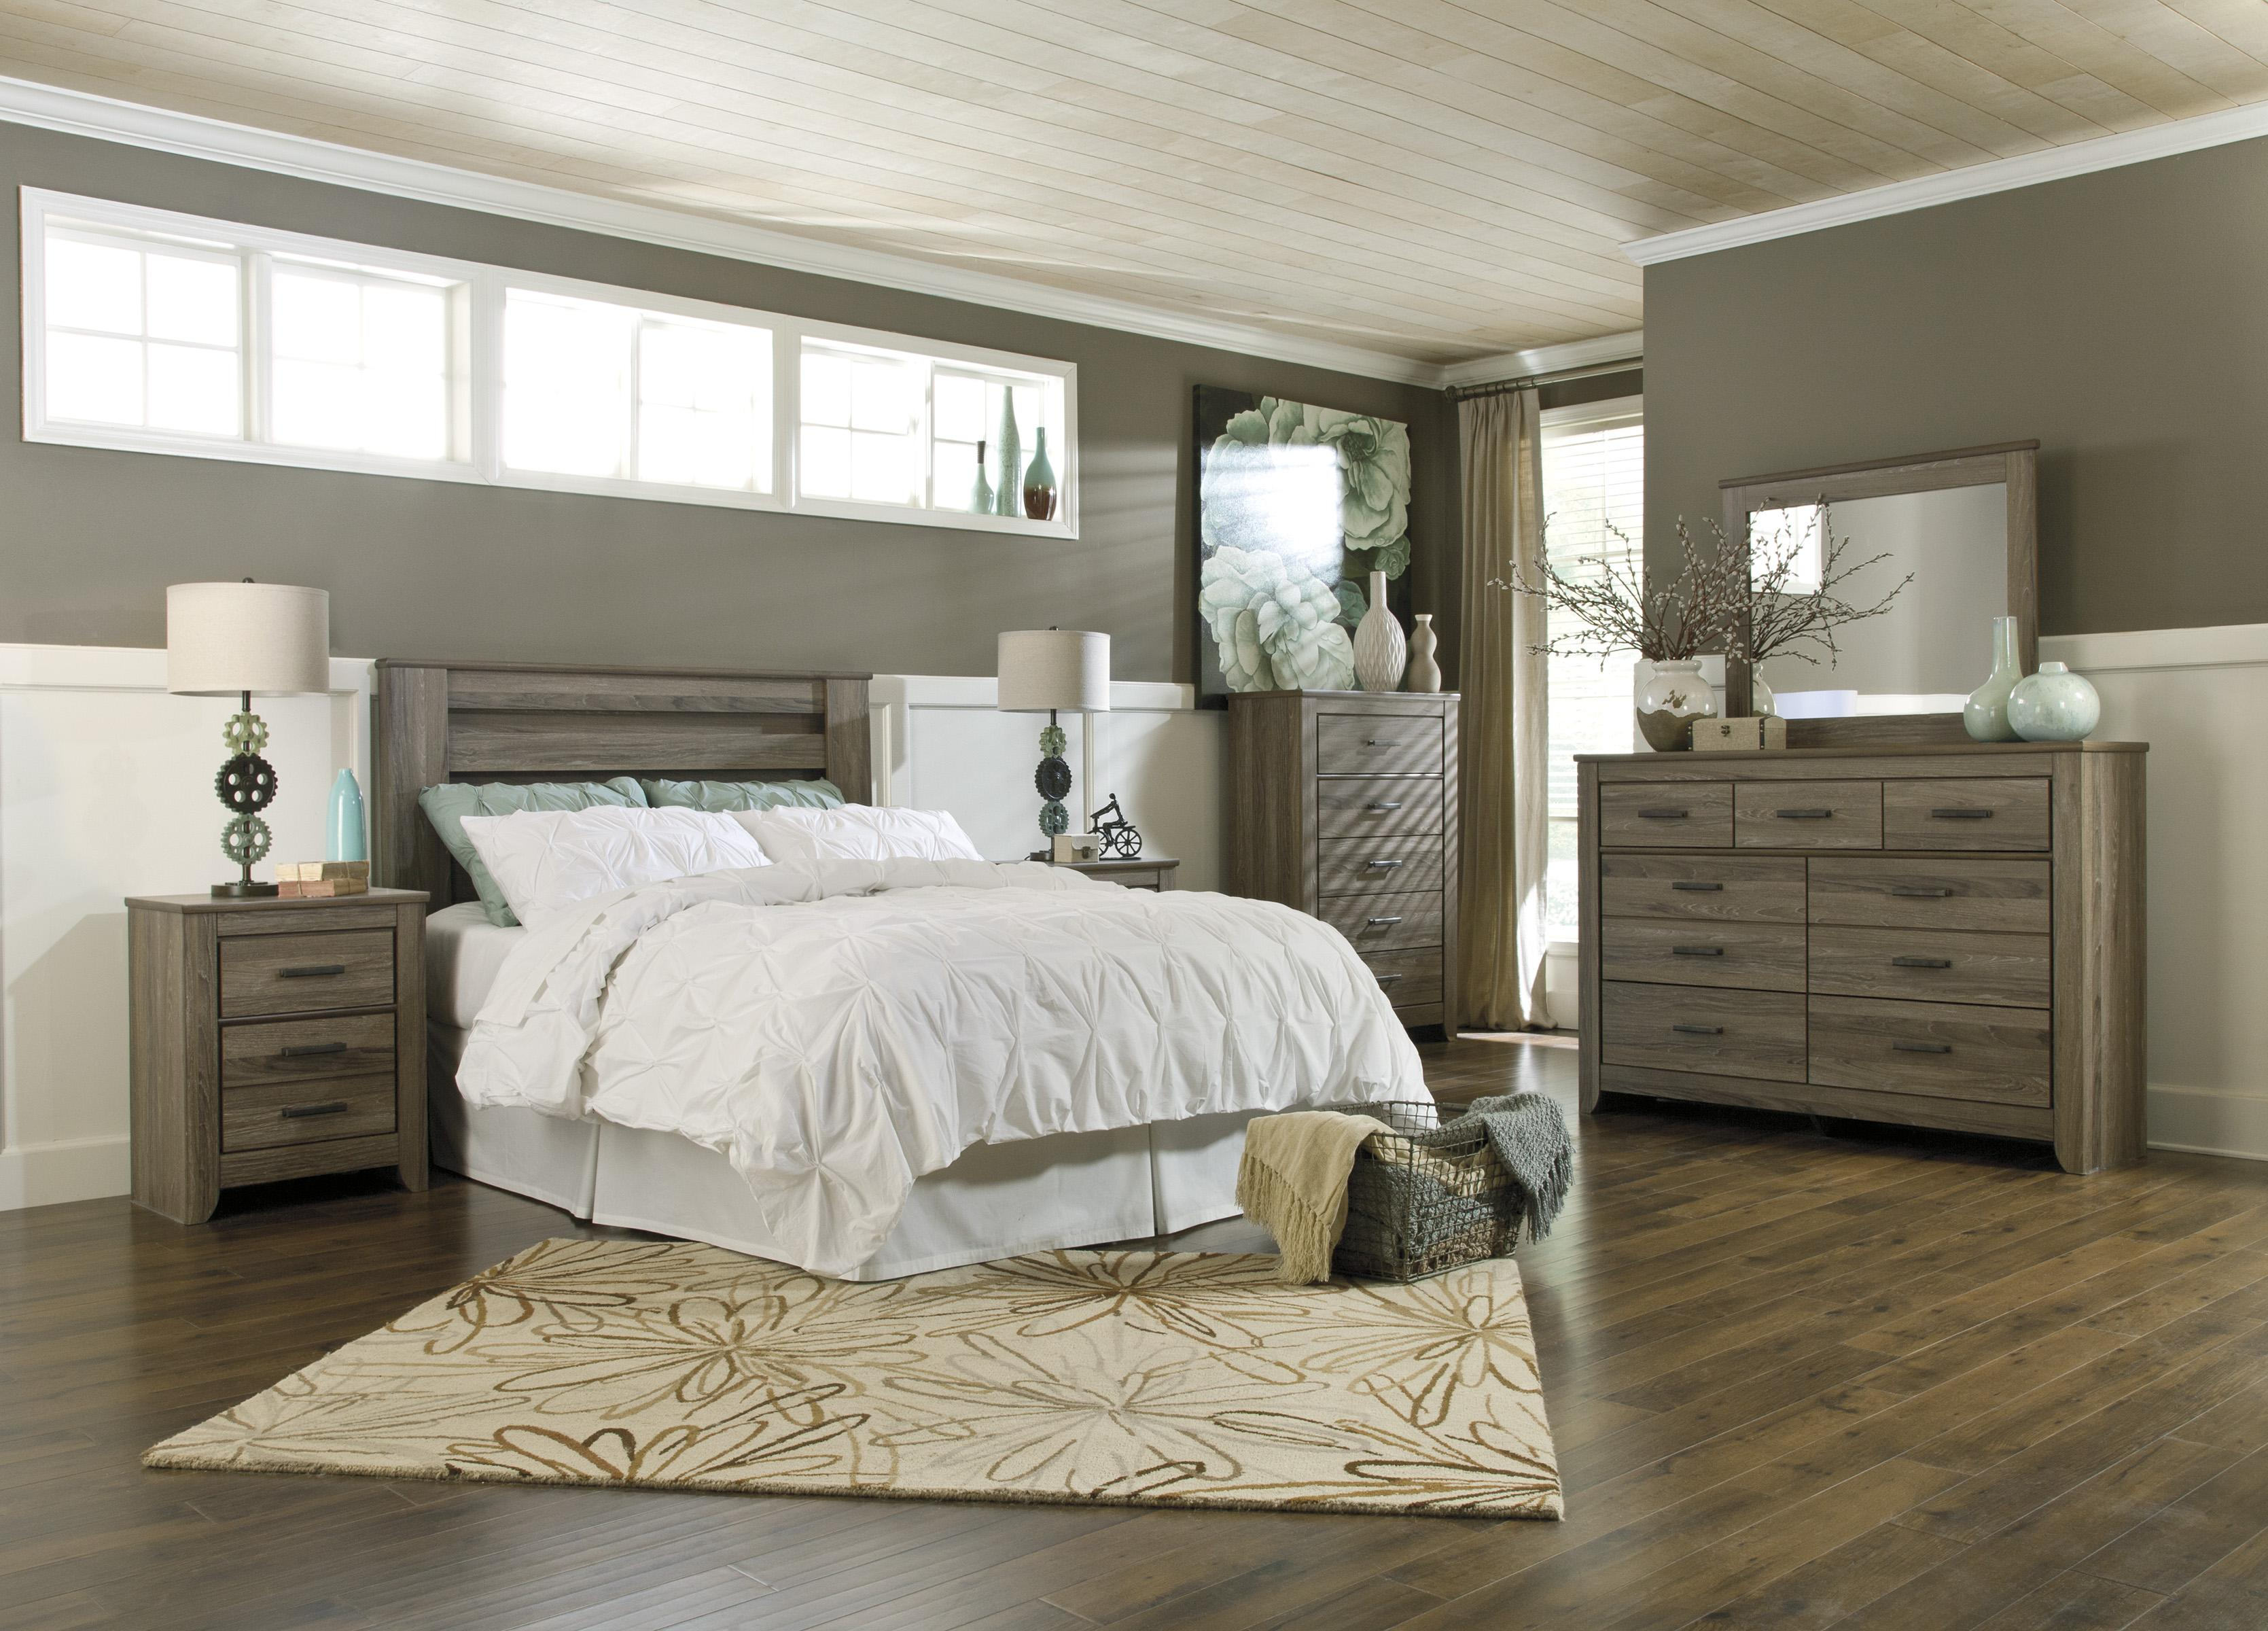 Signature design by ashley zelen b248 67 queen full poster - Ashley furniture full bedroom sets ...